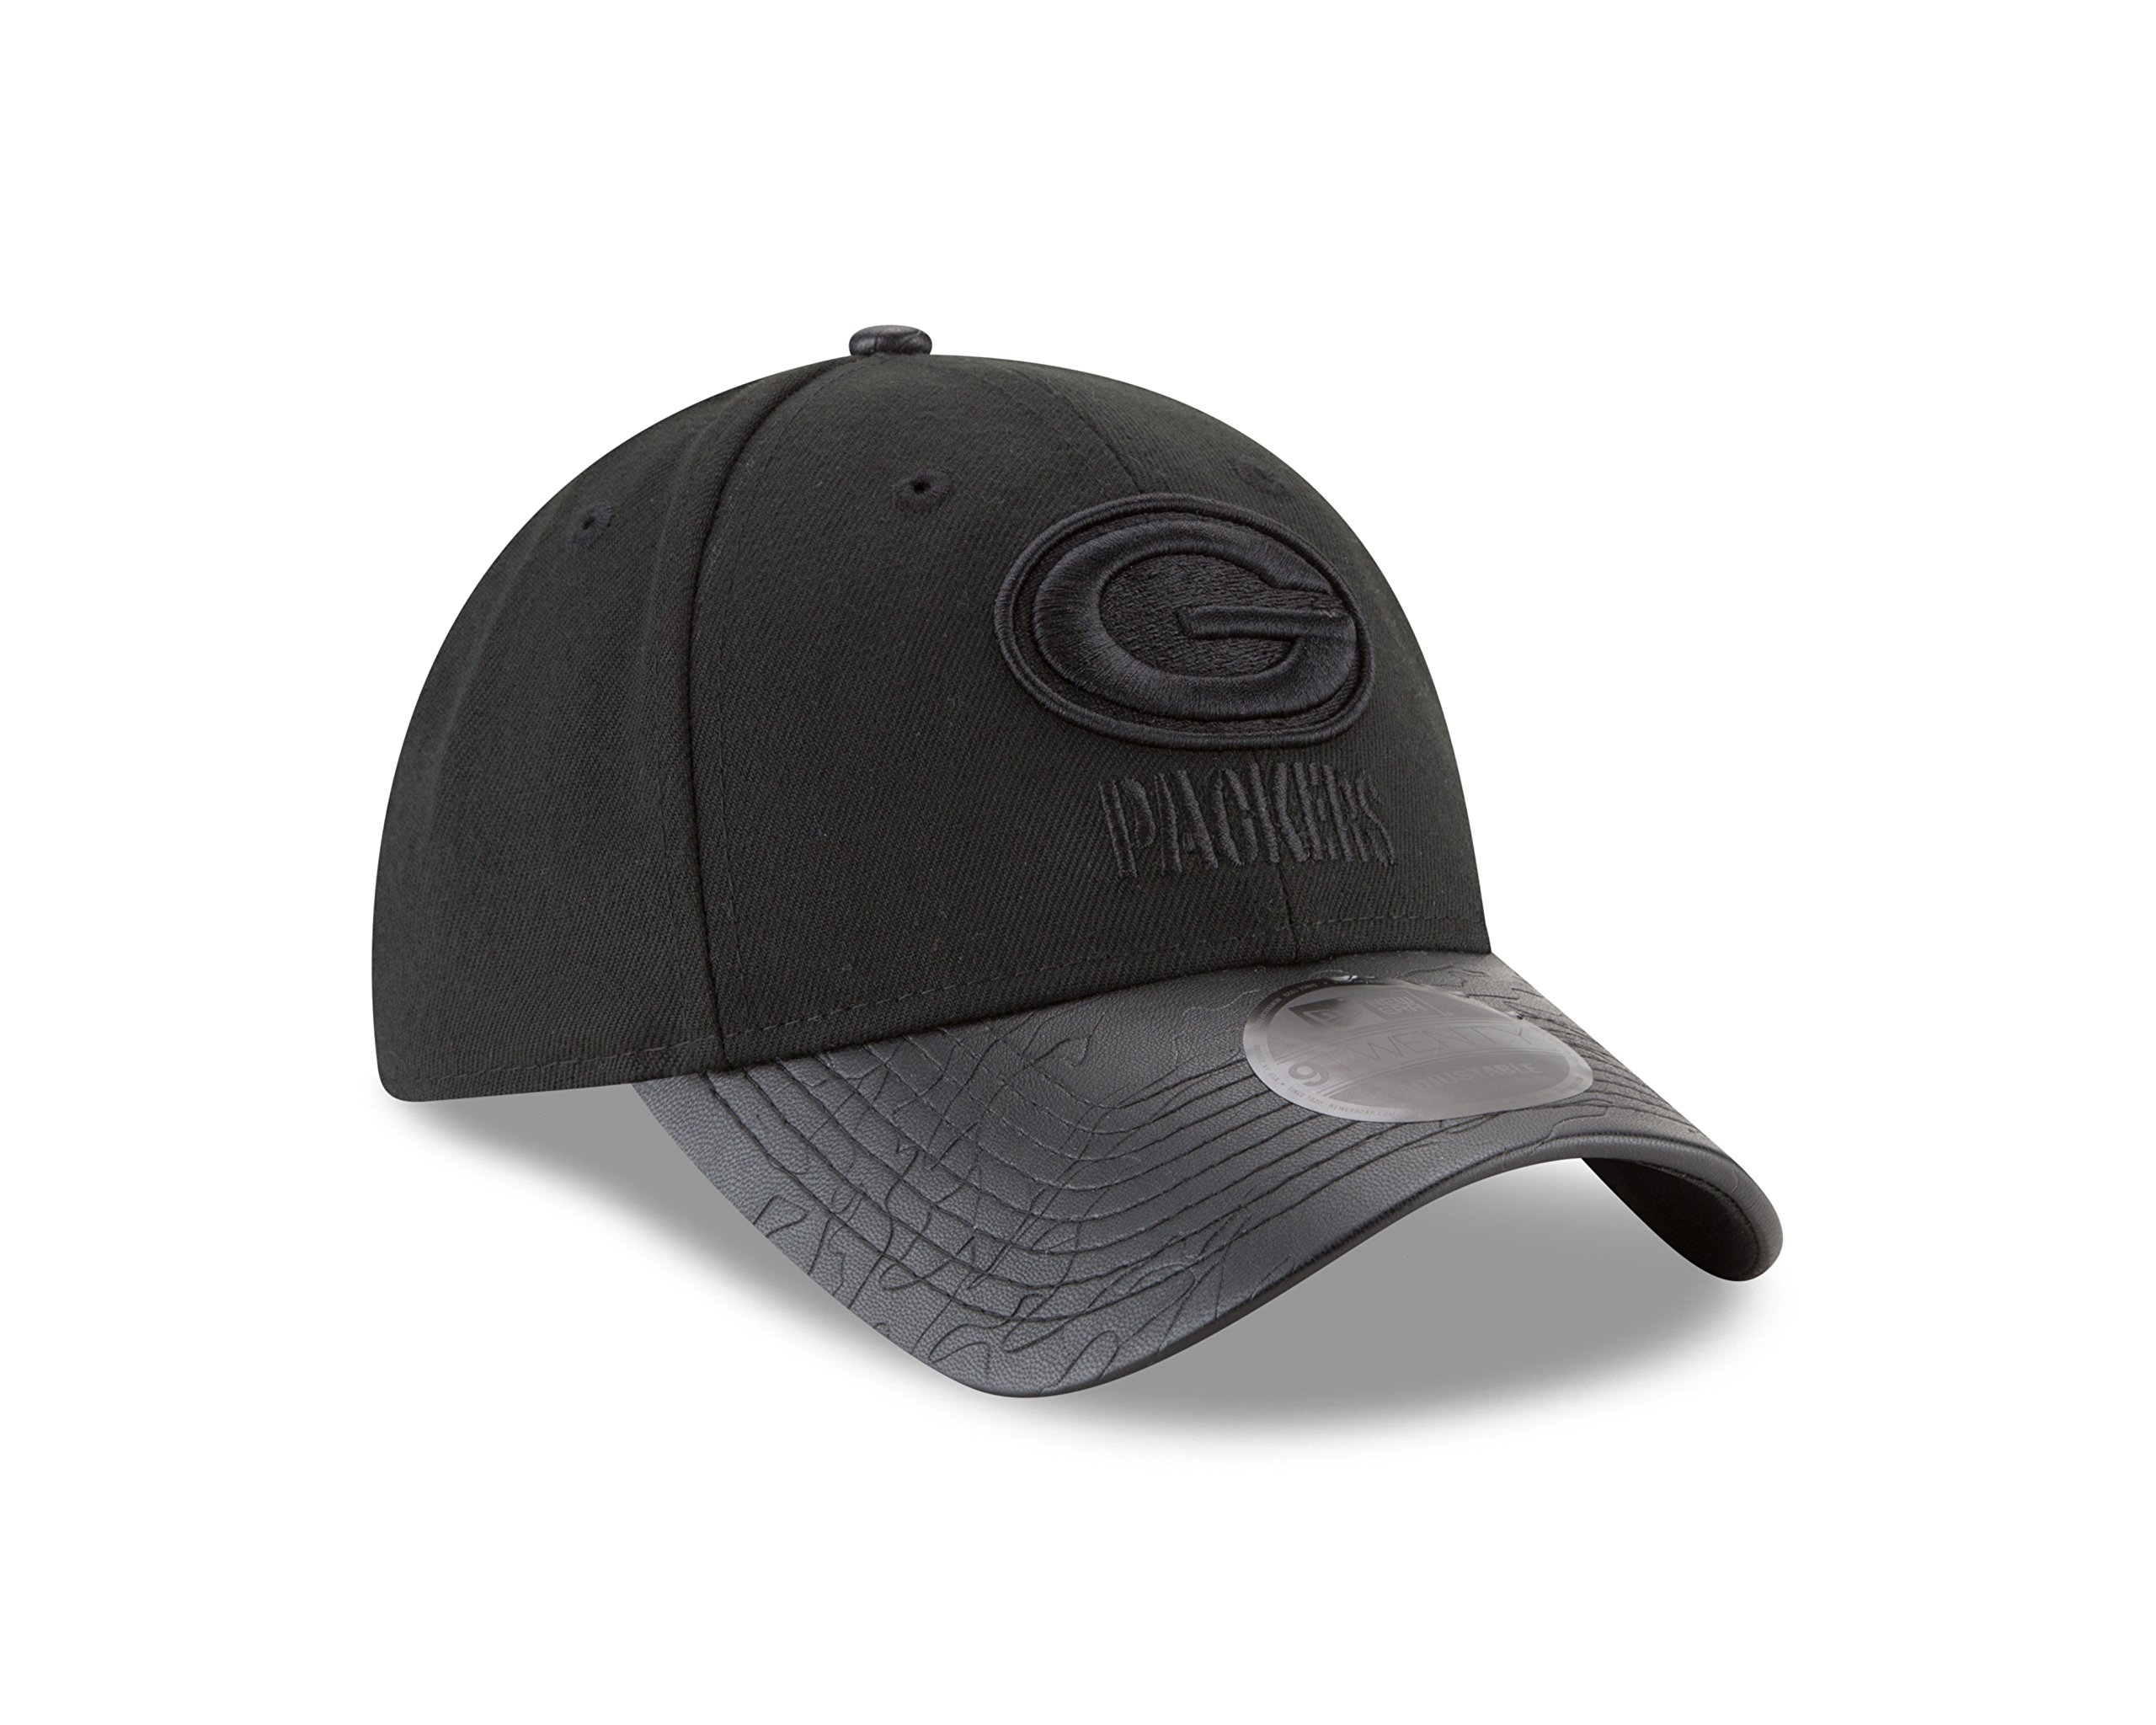 23e5995a848 Green Bay Packers Hat Black Top Deals   Lowest Price